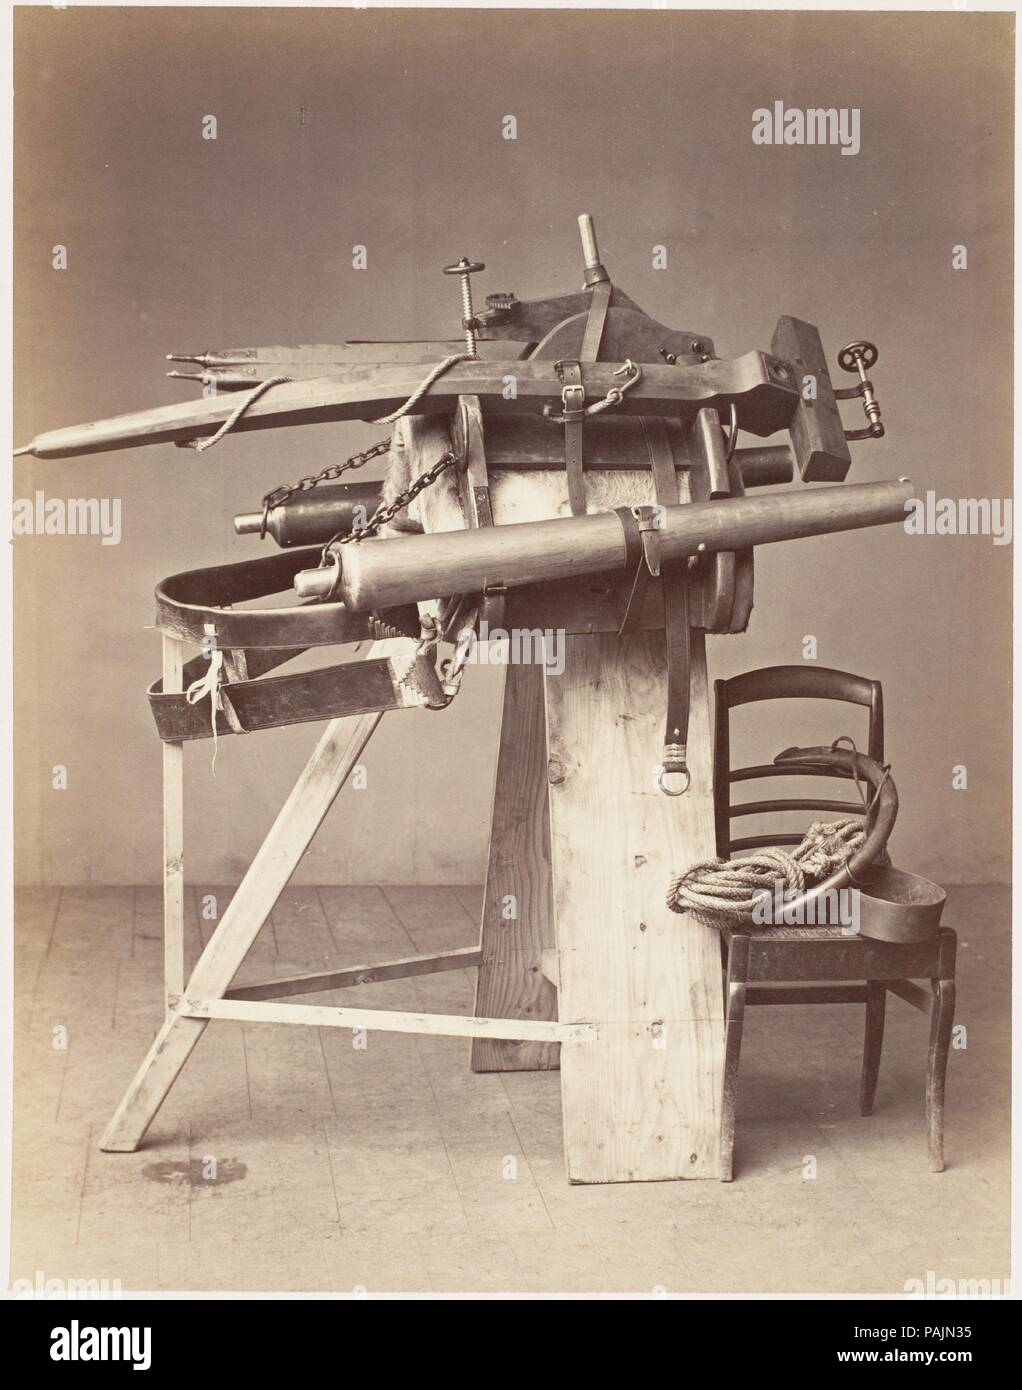 Saddle Mounted Cannon. Artist: Unknown (French). Dimensions: 18.9 x 14.8 cm (7 7/16 x 5 13/16 in. ). Date: 1860s.  The zamburak (Persian for 'little wasp') was a saddle-mounted cannon used in cavalry warfare in Central and Southeast Asia during the eighteenth and nineteenth centuries. Deployed not for accuracy but to disrupt enemy formations, the cannons were attached to pivots and fired directly from a camel's back with the animal on its knees. Here a rudimentary sawhorse has replaced the camel, and the threat of the weapon has been defused by the innocuous setting of a photographer's studio. - Stock Image